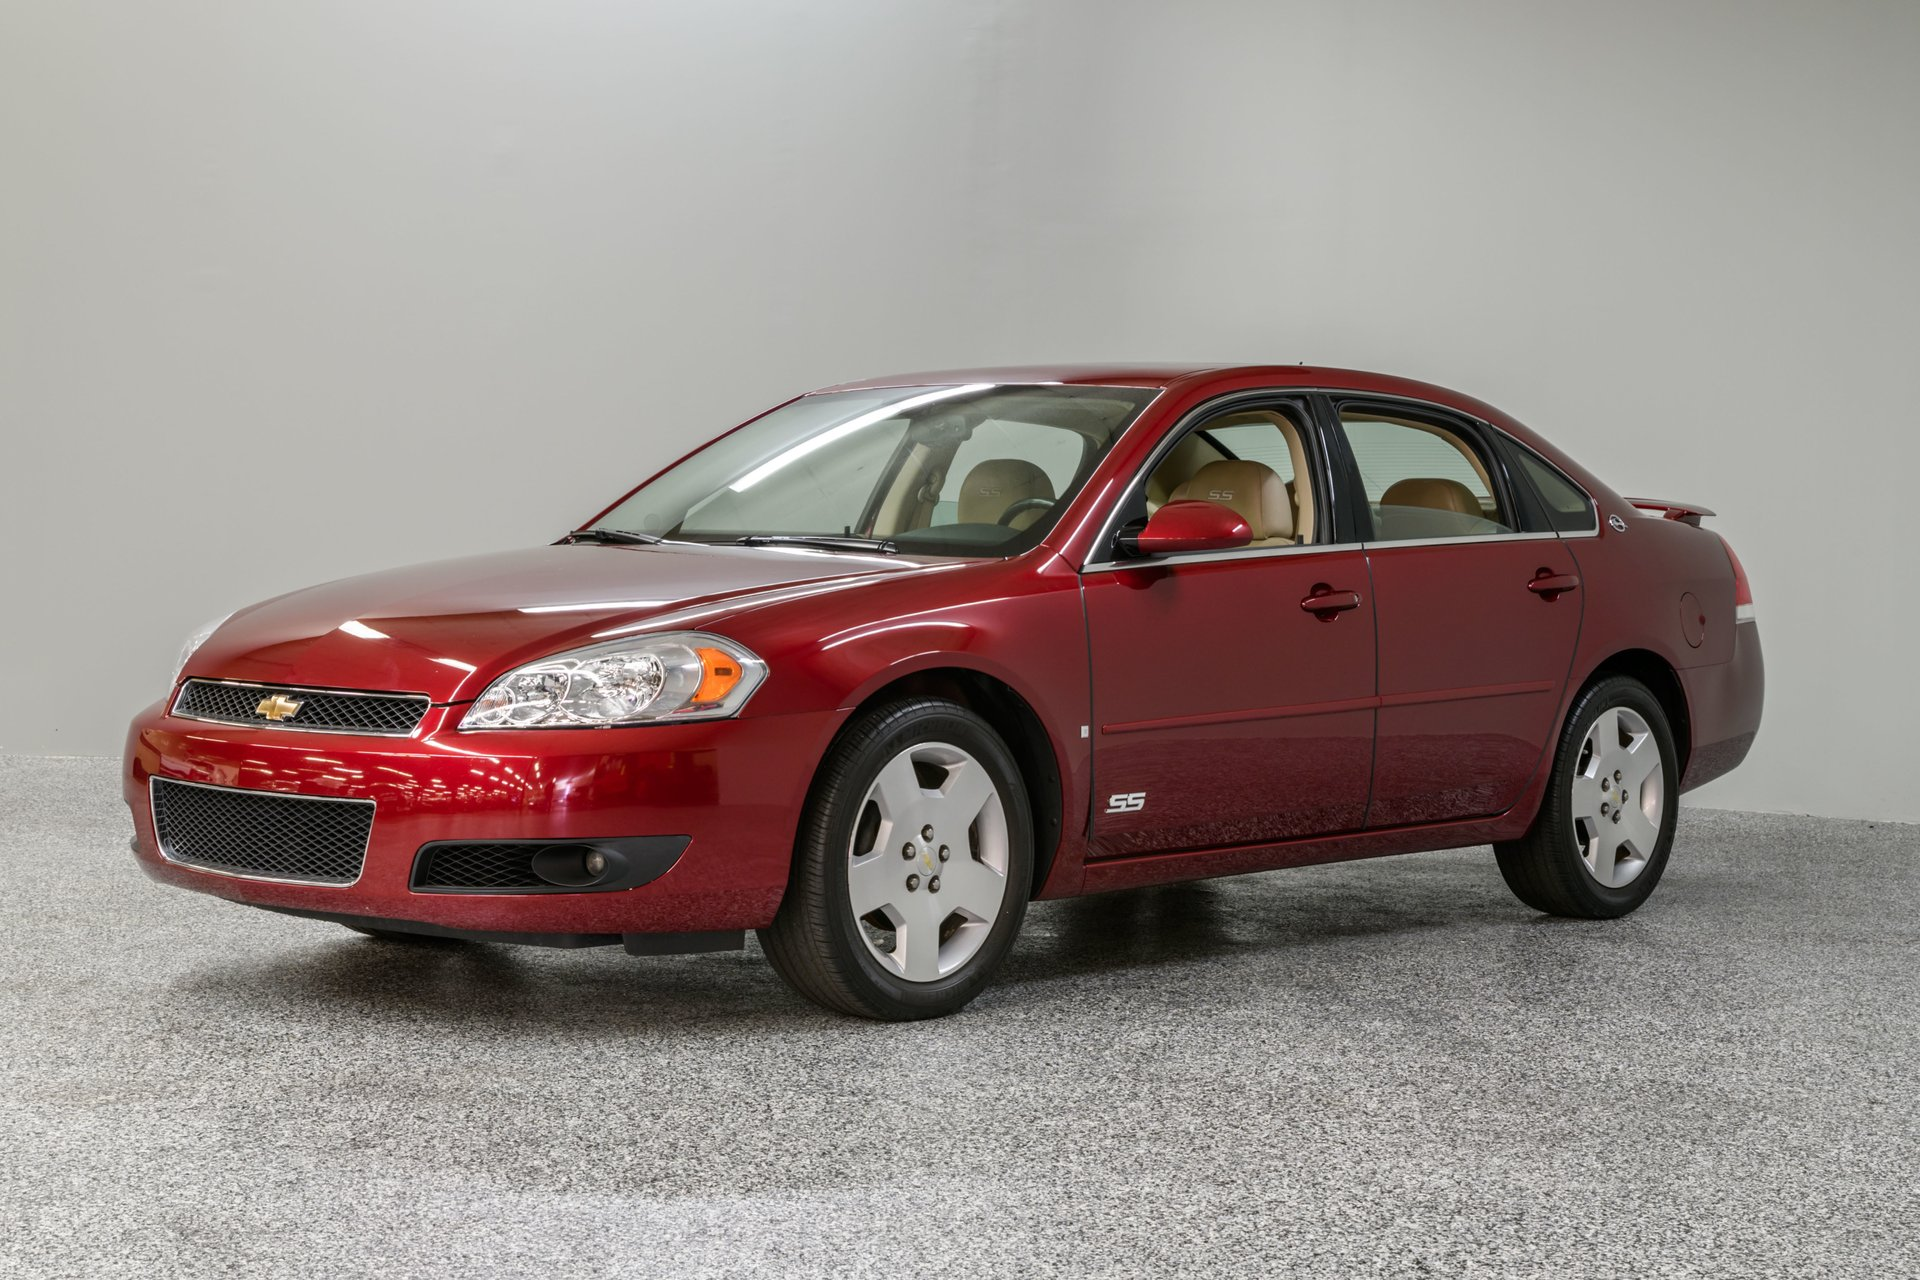 2007 Chevrolet Impala SS for sale